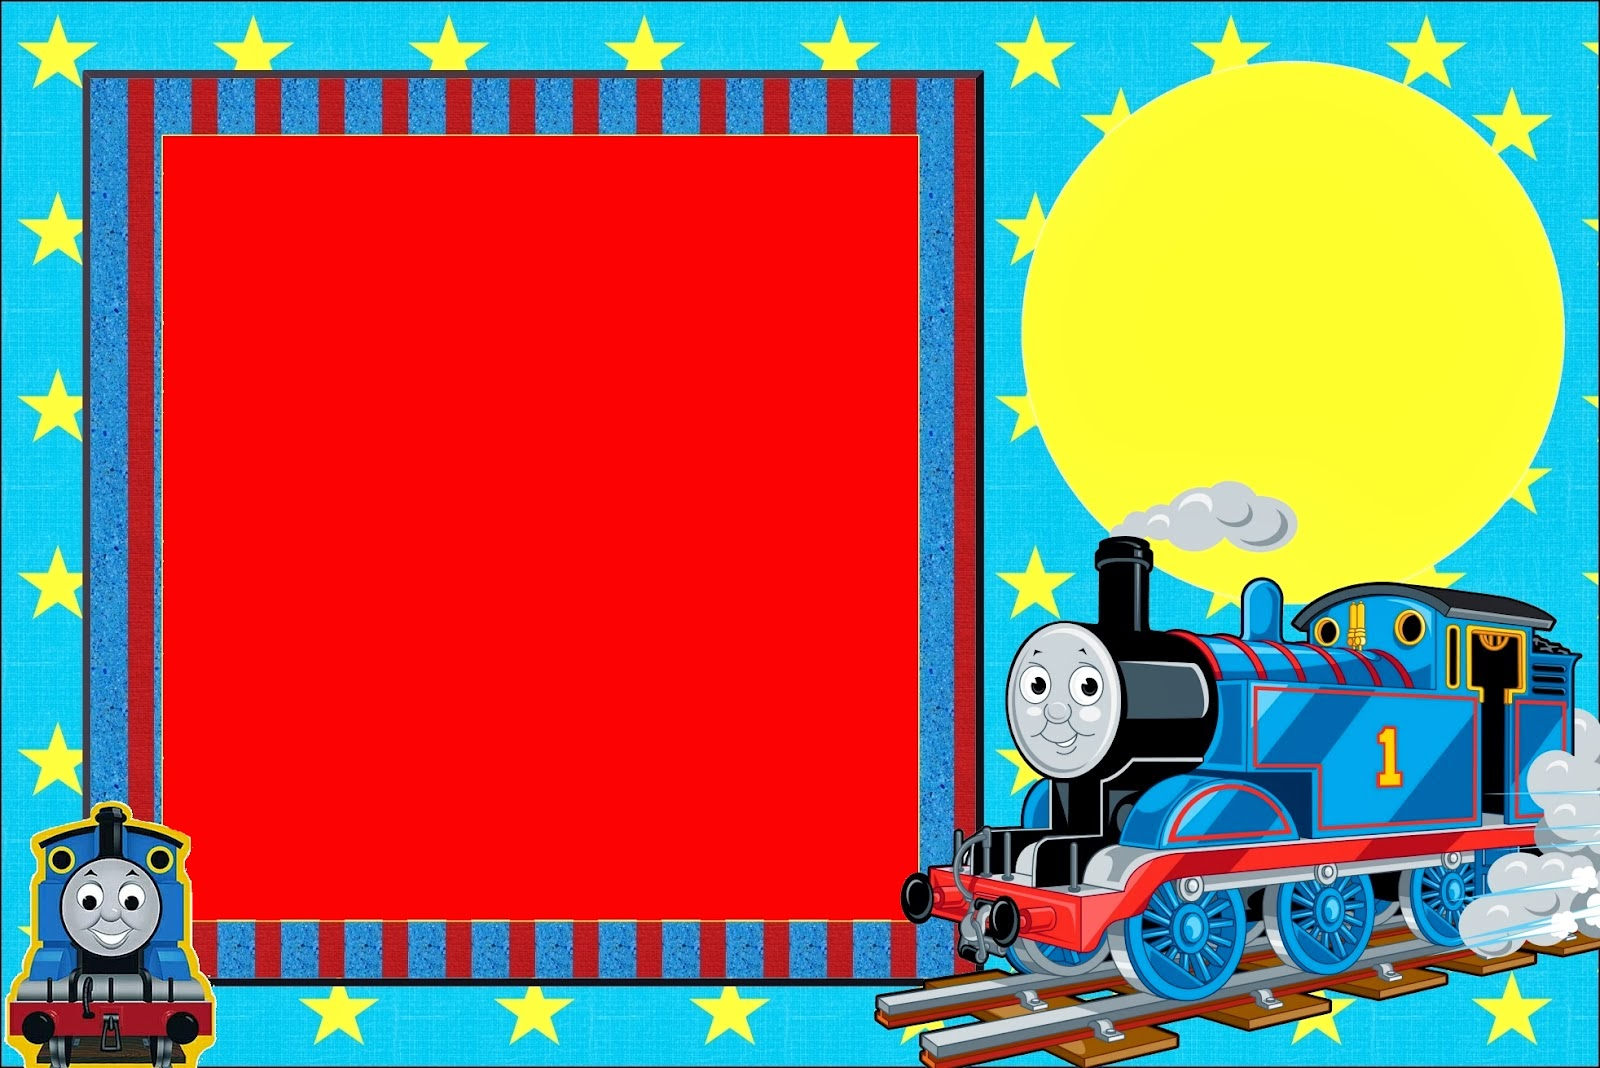 Thomas The Train Free Printable Invitations Oh My Fiesta